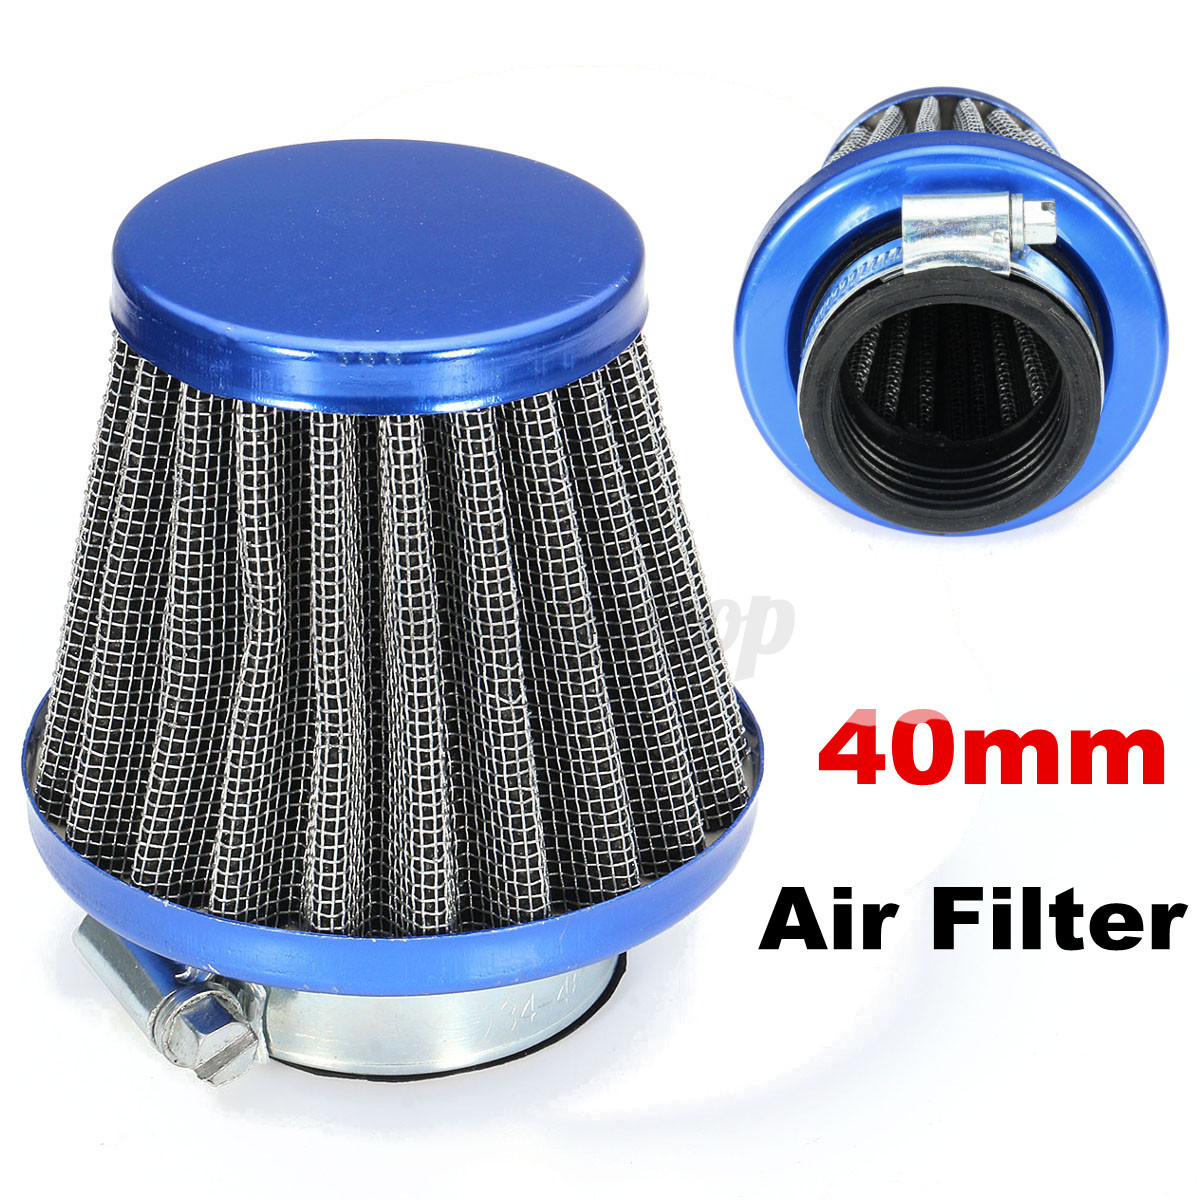 Moped Air Filter : Mm air filter cleaner chinese gy cc moped scooter